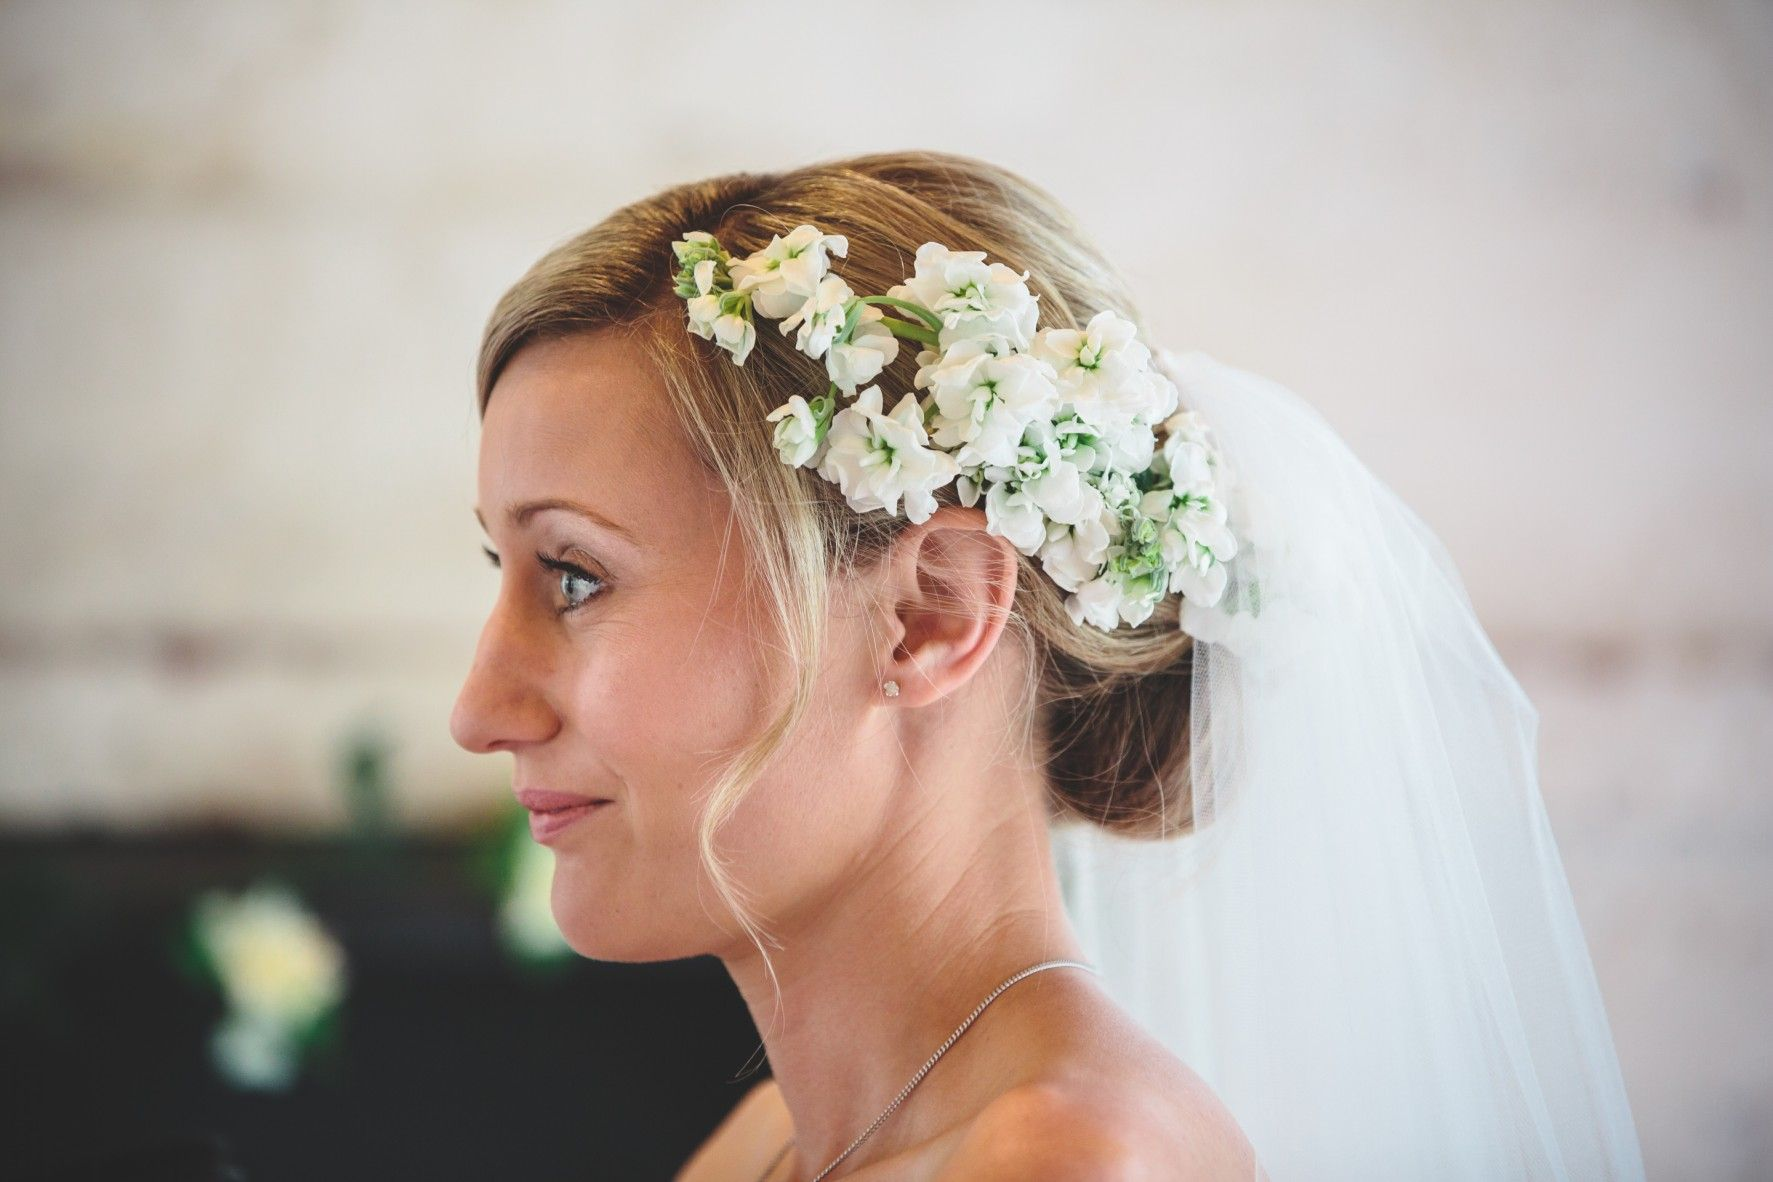 lovely wedding hair style at arthurs point, queenstown, new